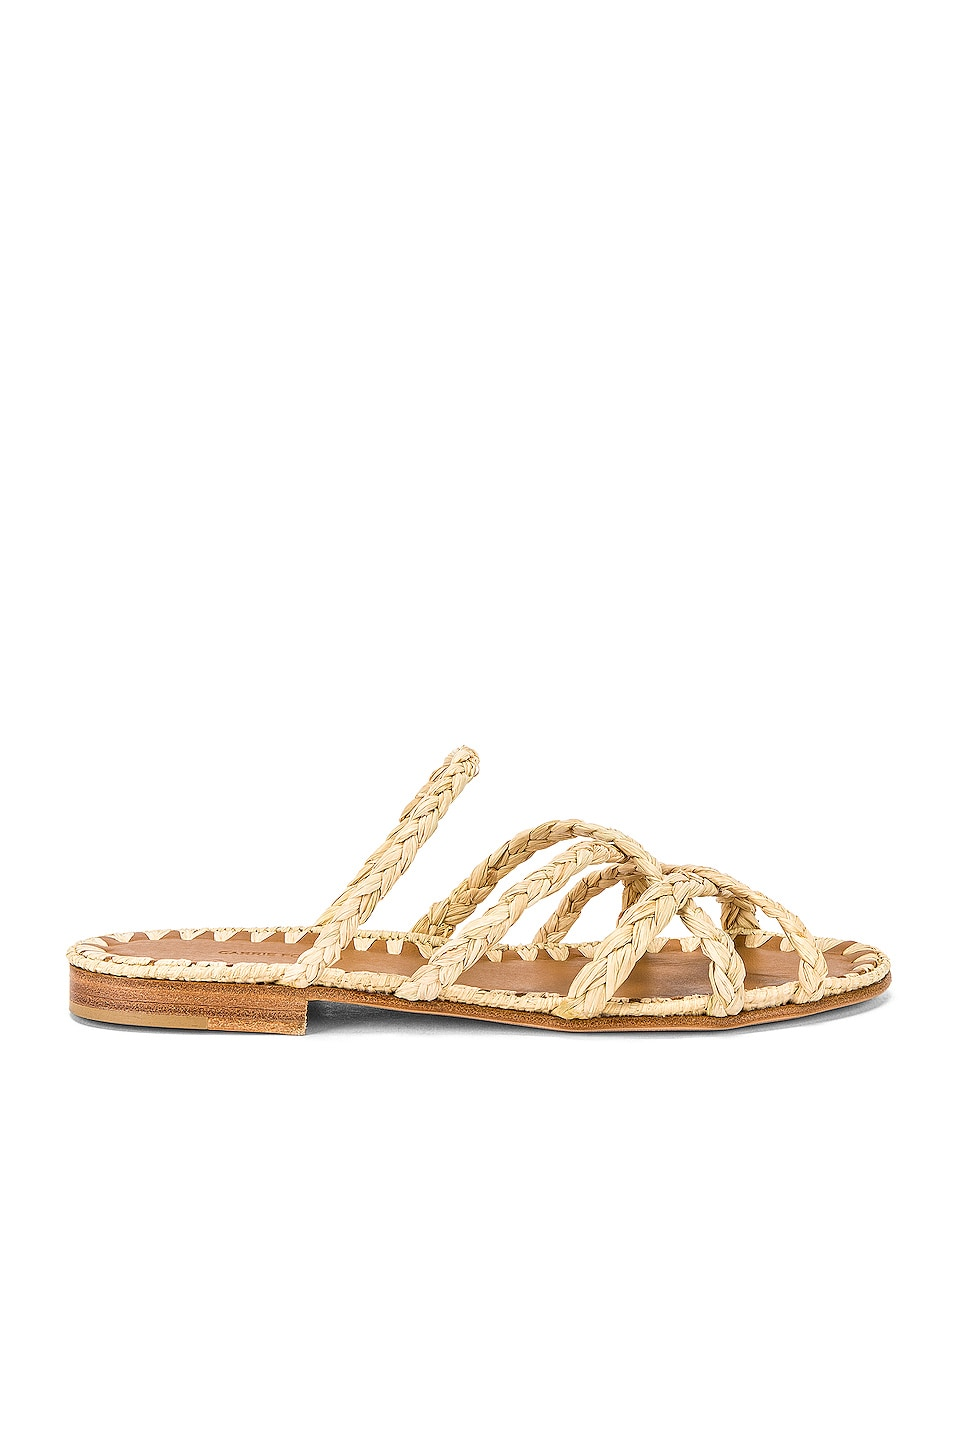 Carrie Forbes Noura Sandal in Natural